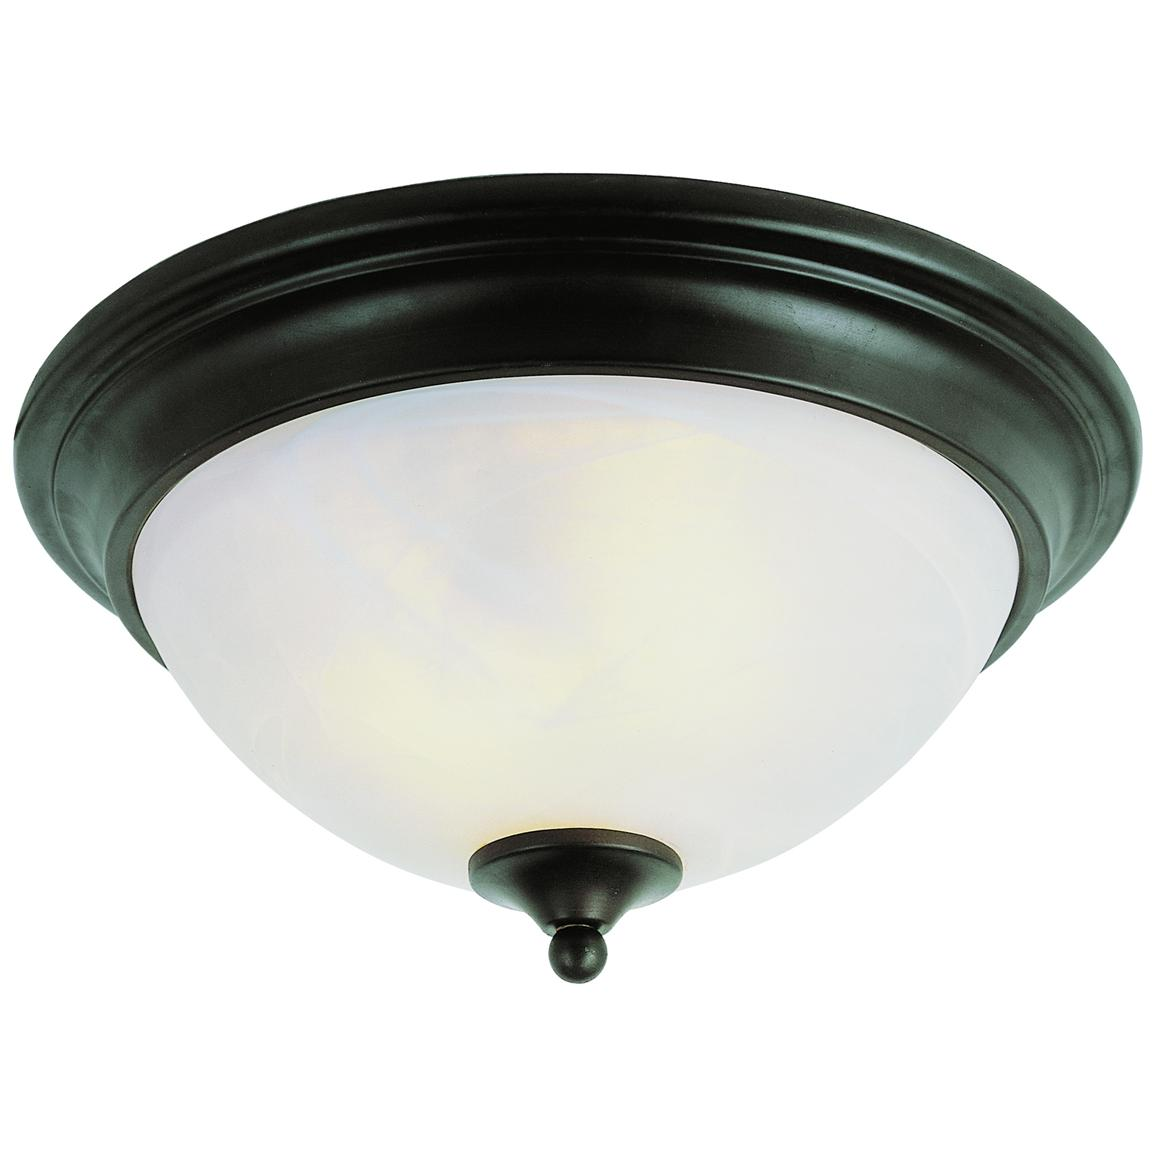 Trans Globe Lighting® Bishop 2-light 13 inch Flush-Mount Fixture